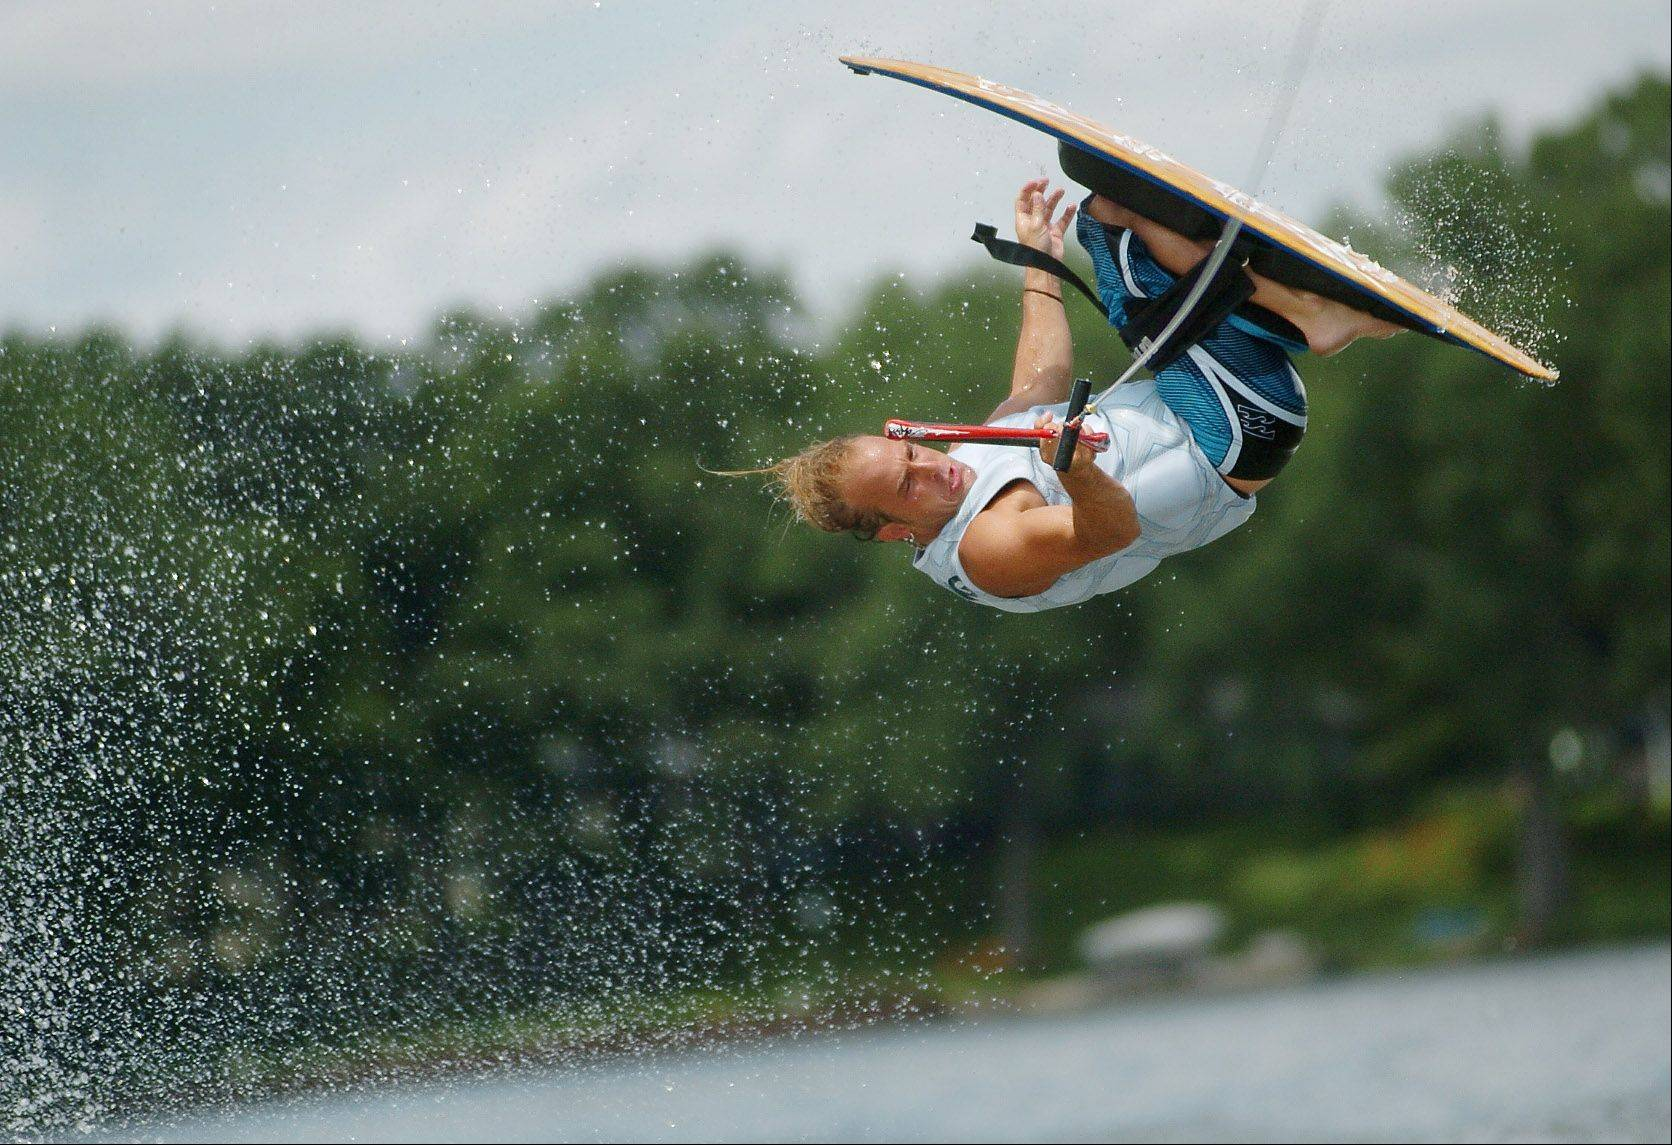 Frankie Panno of Streamwood performs a kneeboarding jump at the Mundelein Park and Recreation District's Diamond Lake Wakeboard Competition and Demo.